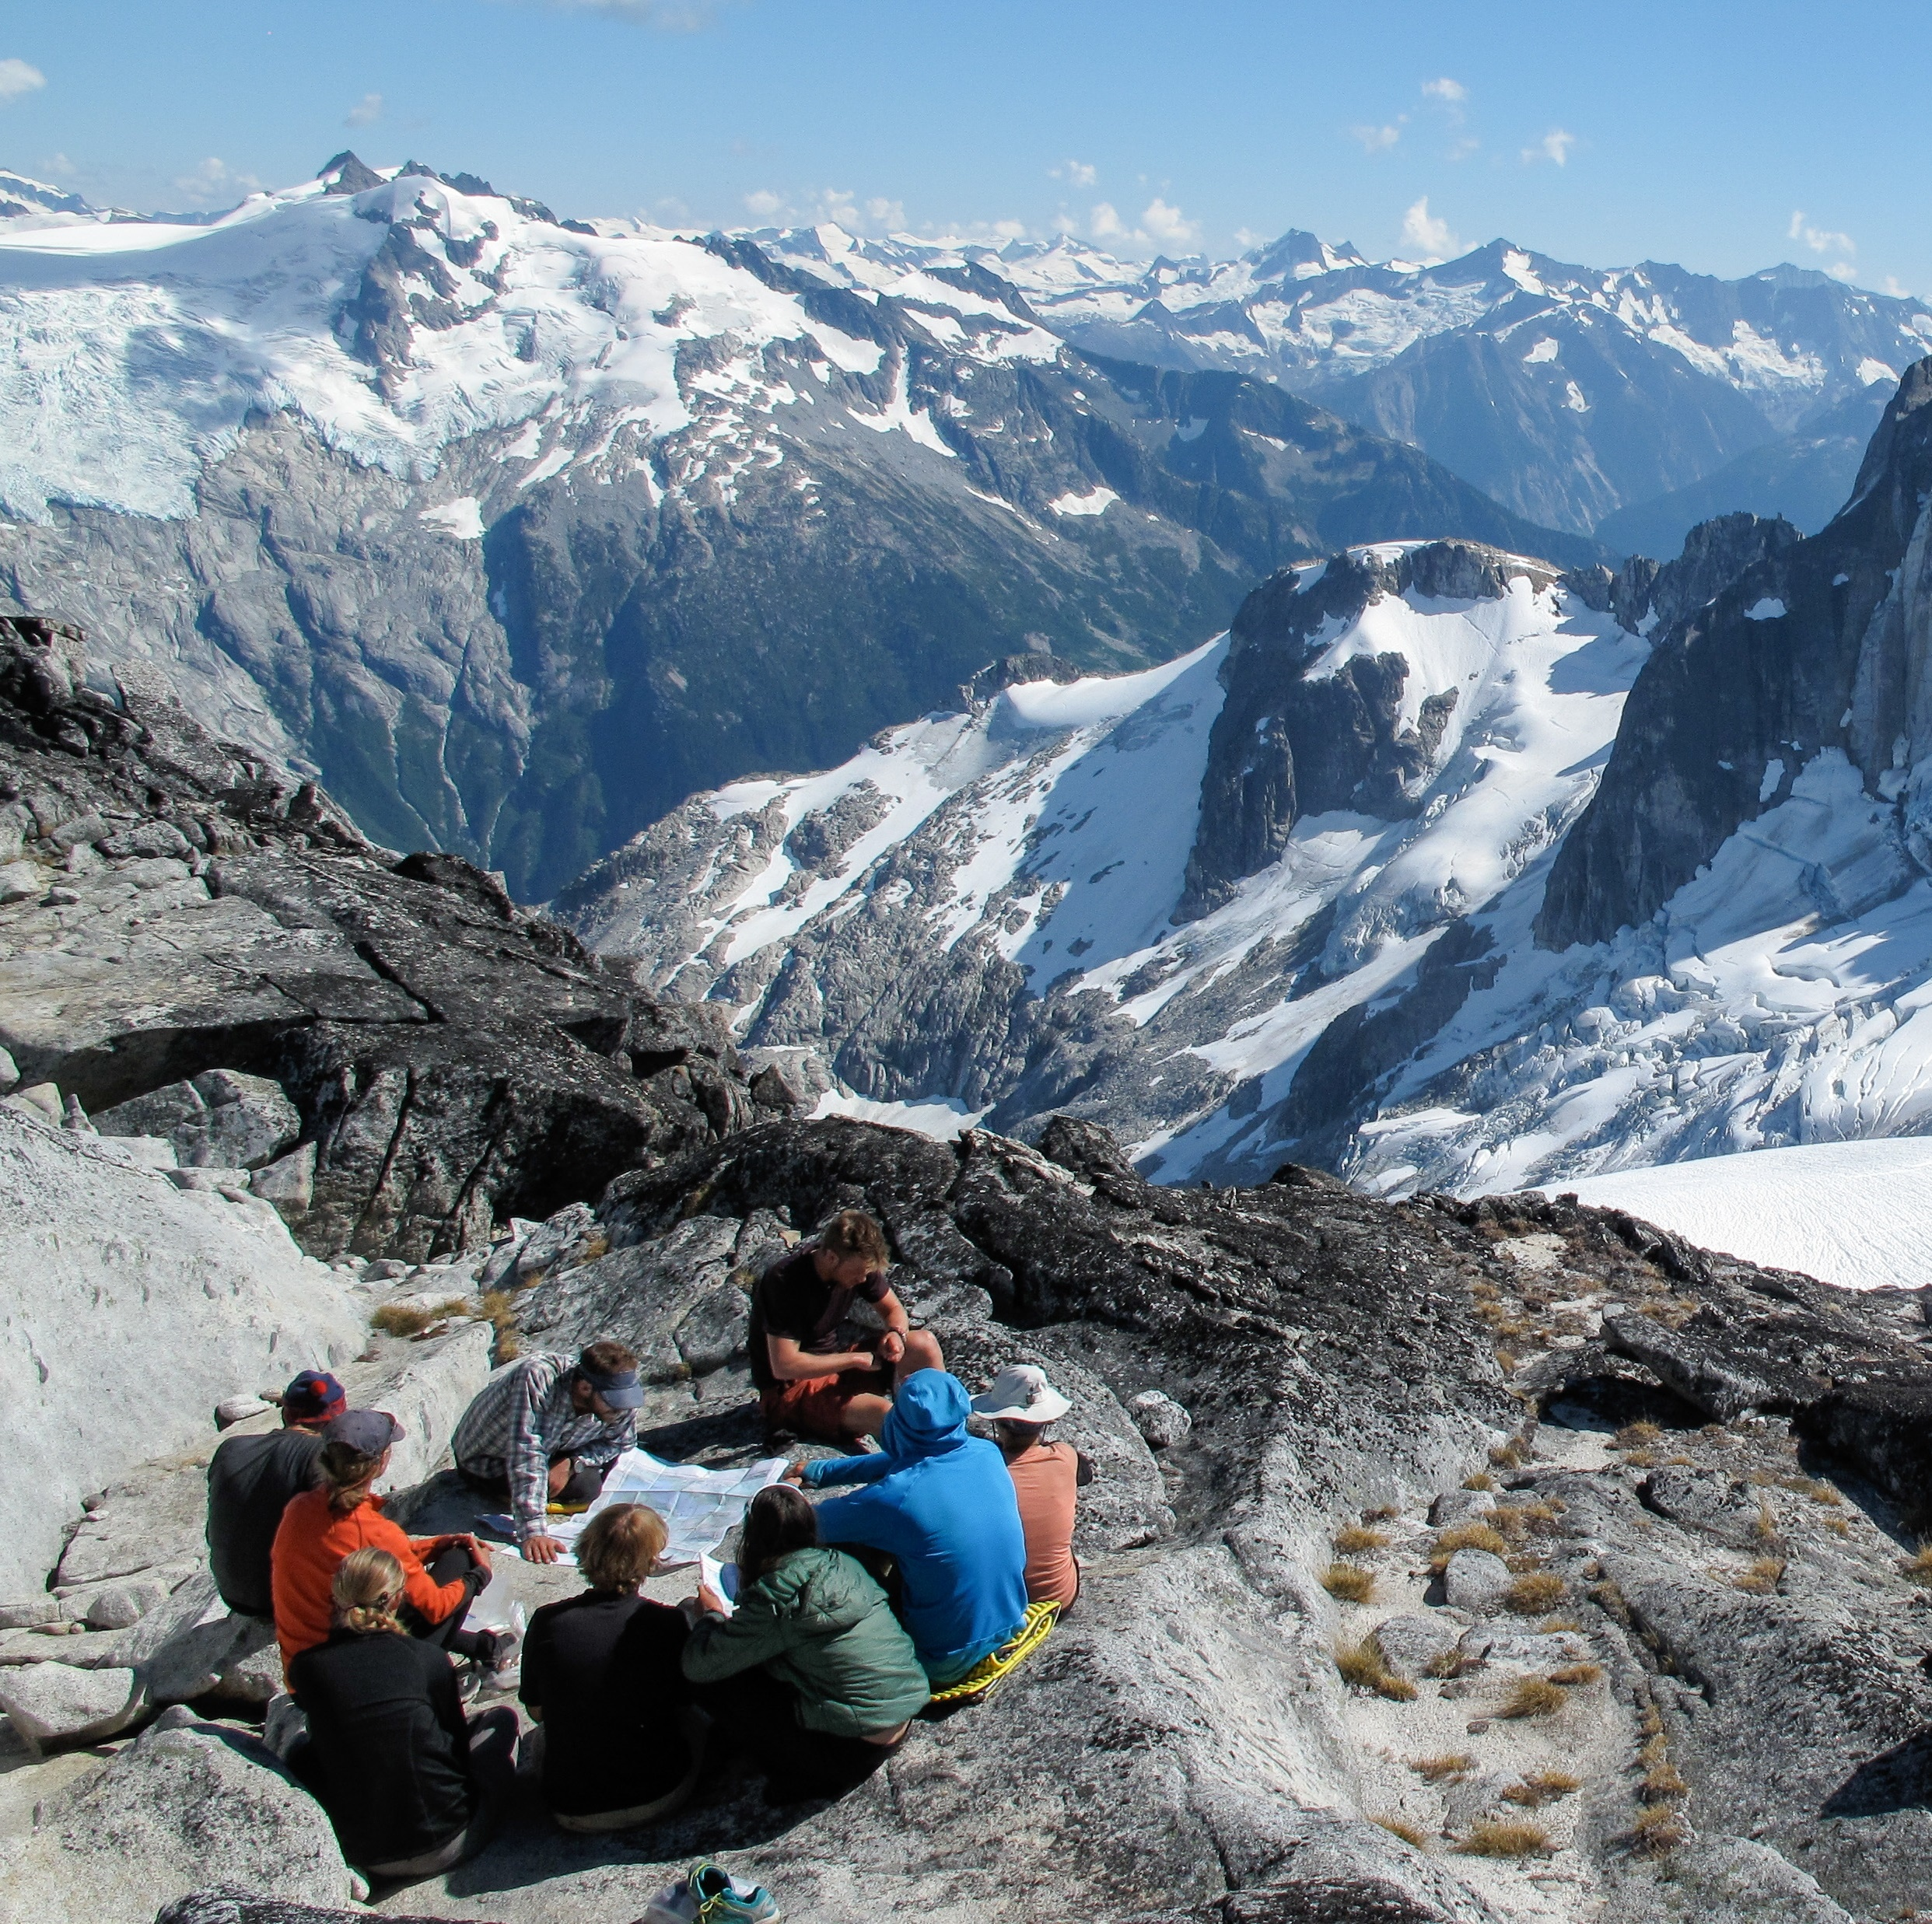 Students on the top of a mountain peak in the Pacific Northwest